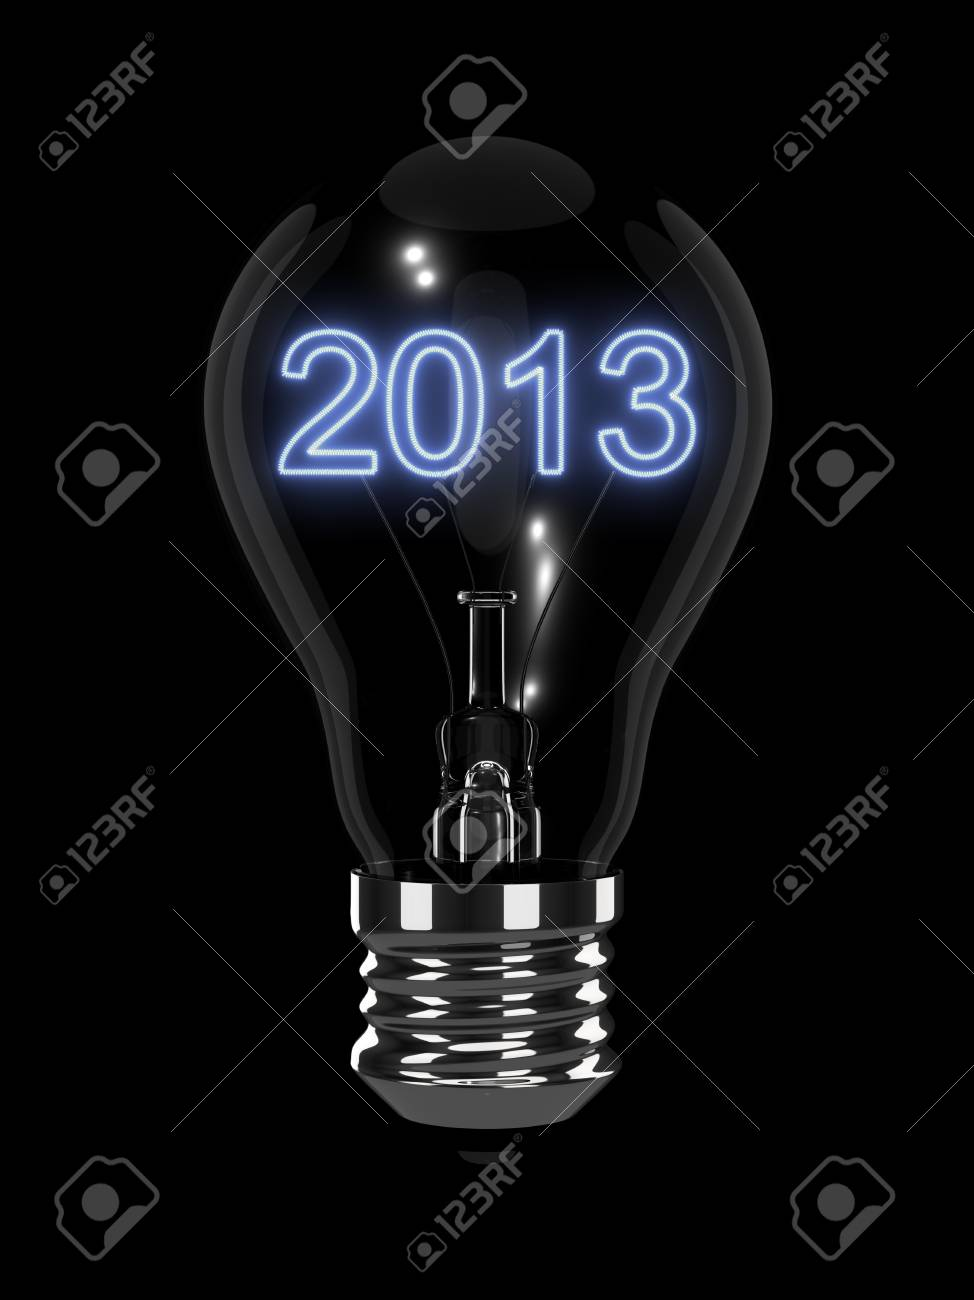 New Year 2013 light bulb. Isolated on the black background. Stock Photo - 16855294